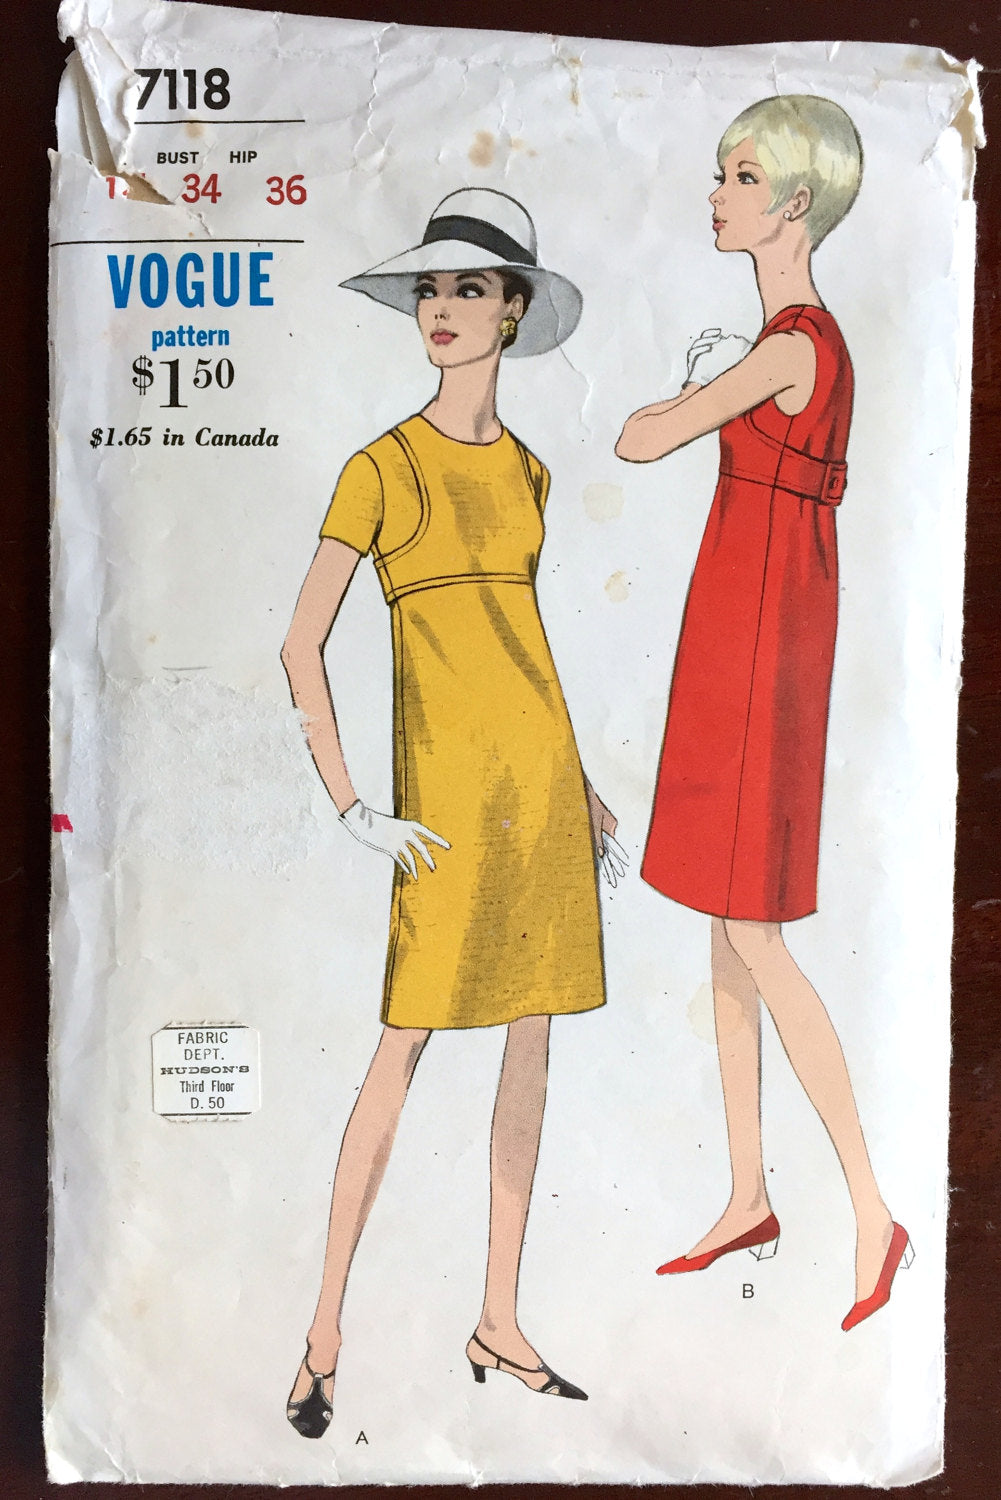 1960's Vogue One-Piece Dress with Two Sleeve-lengths - Bust 34